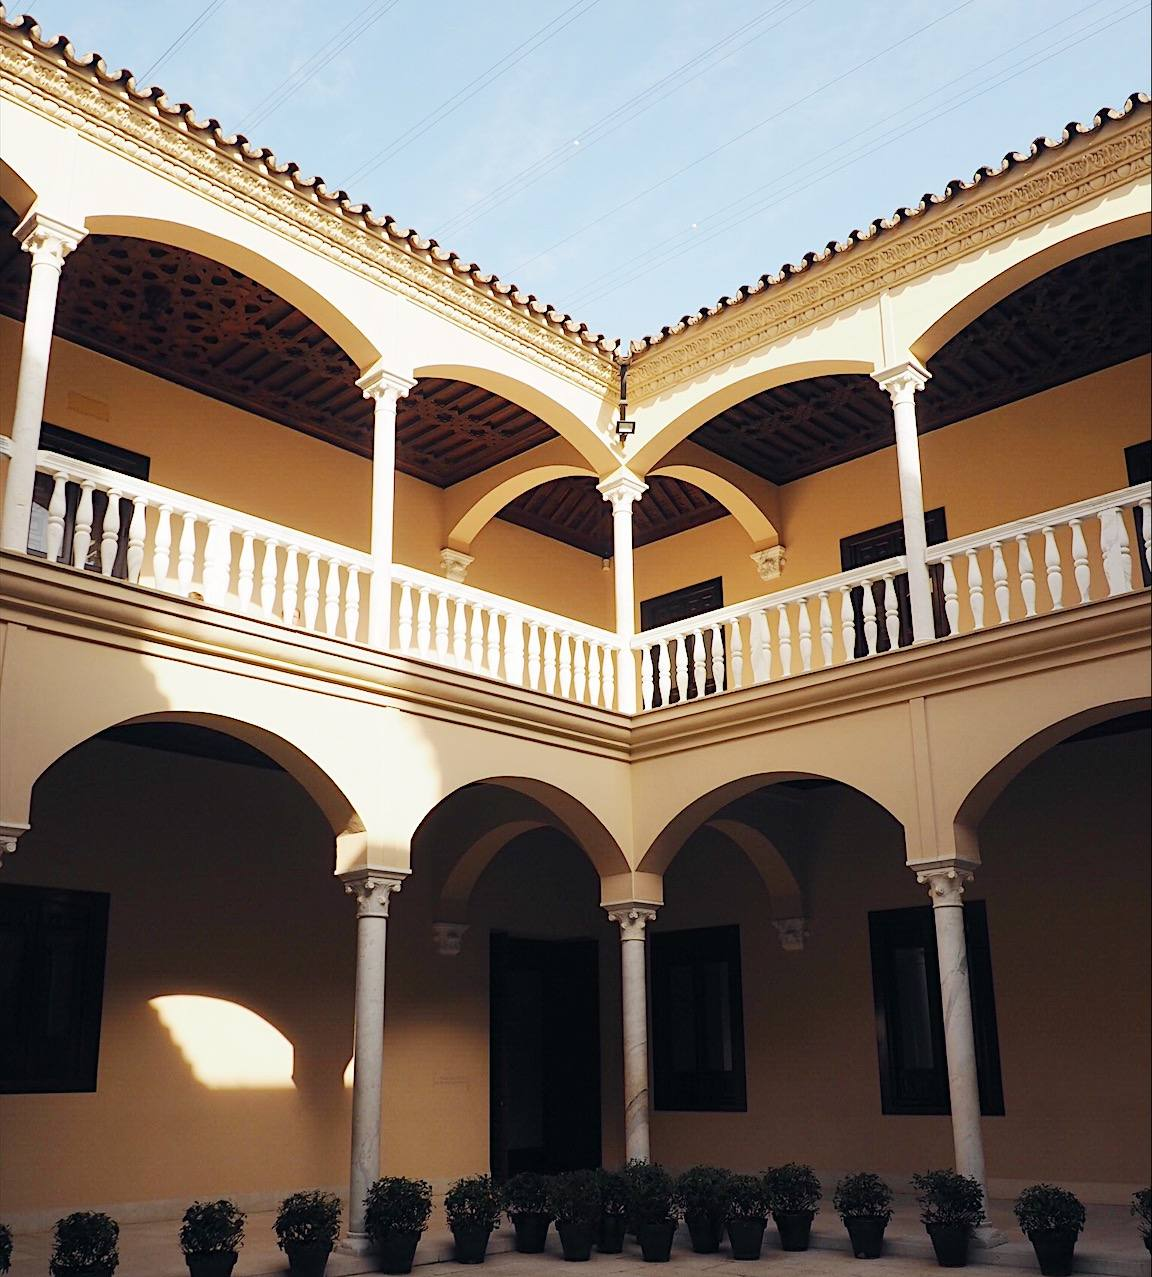 One day in Malaga: visit the Picasso Museum